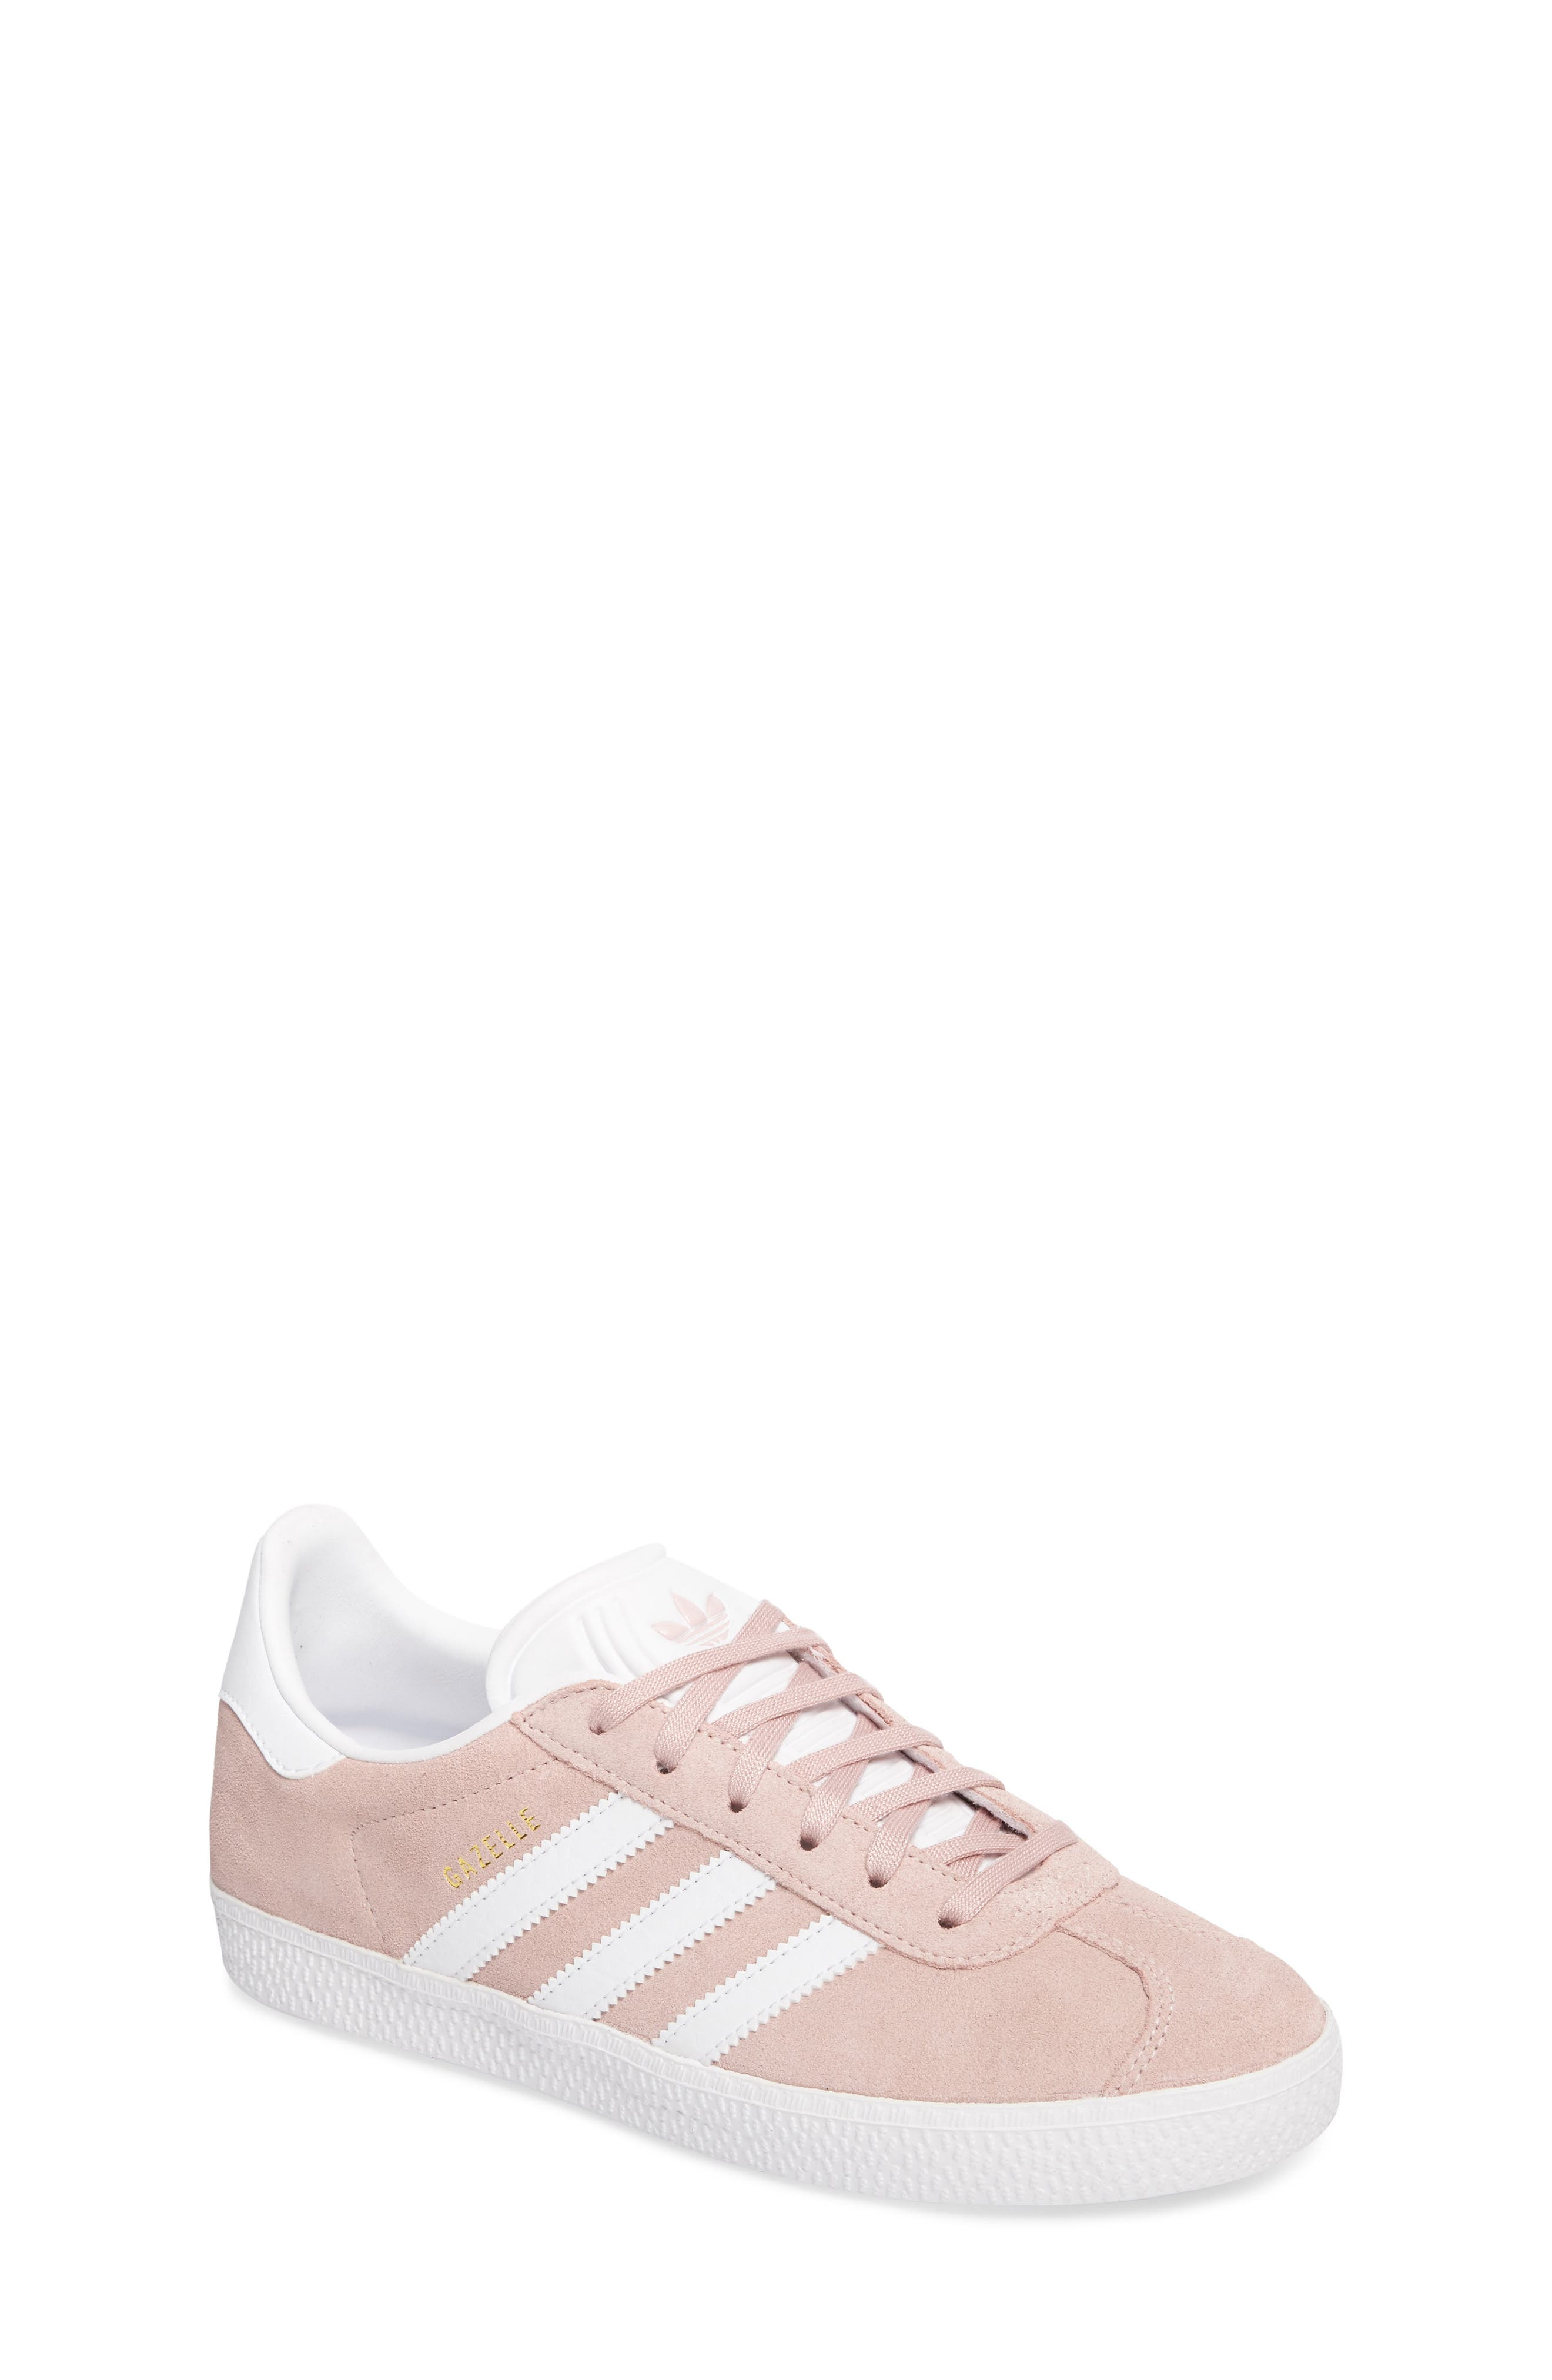 Gazelle Sneaker,                         Main,                         color, 682